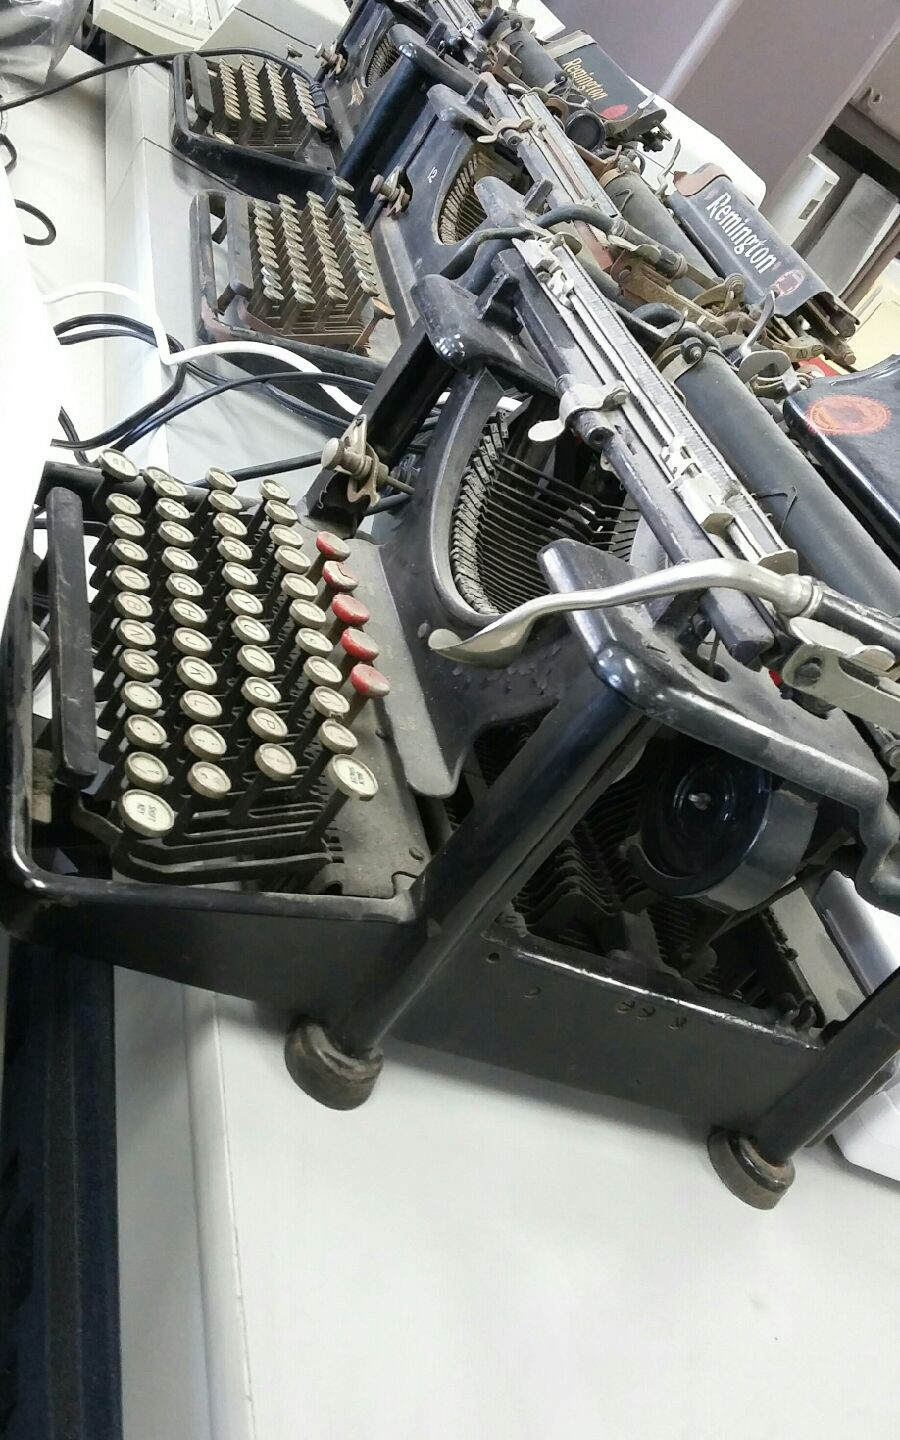 A wide variety of typewriters